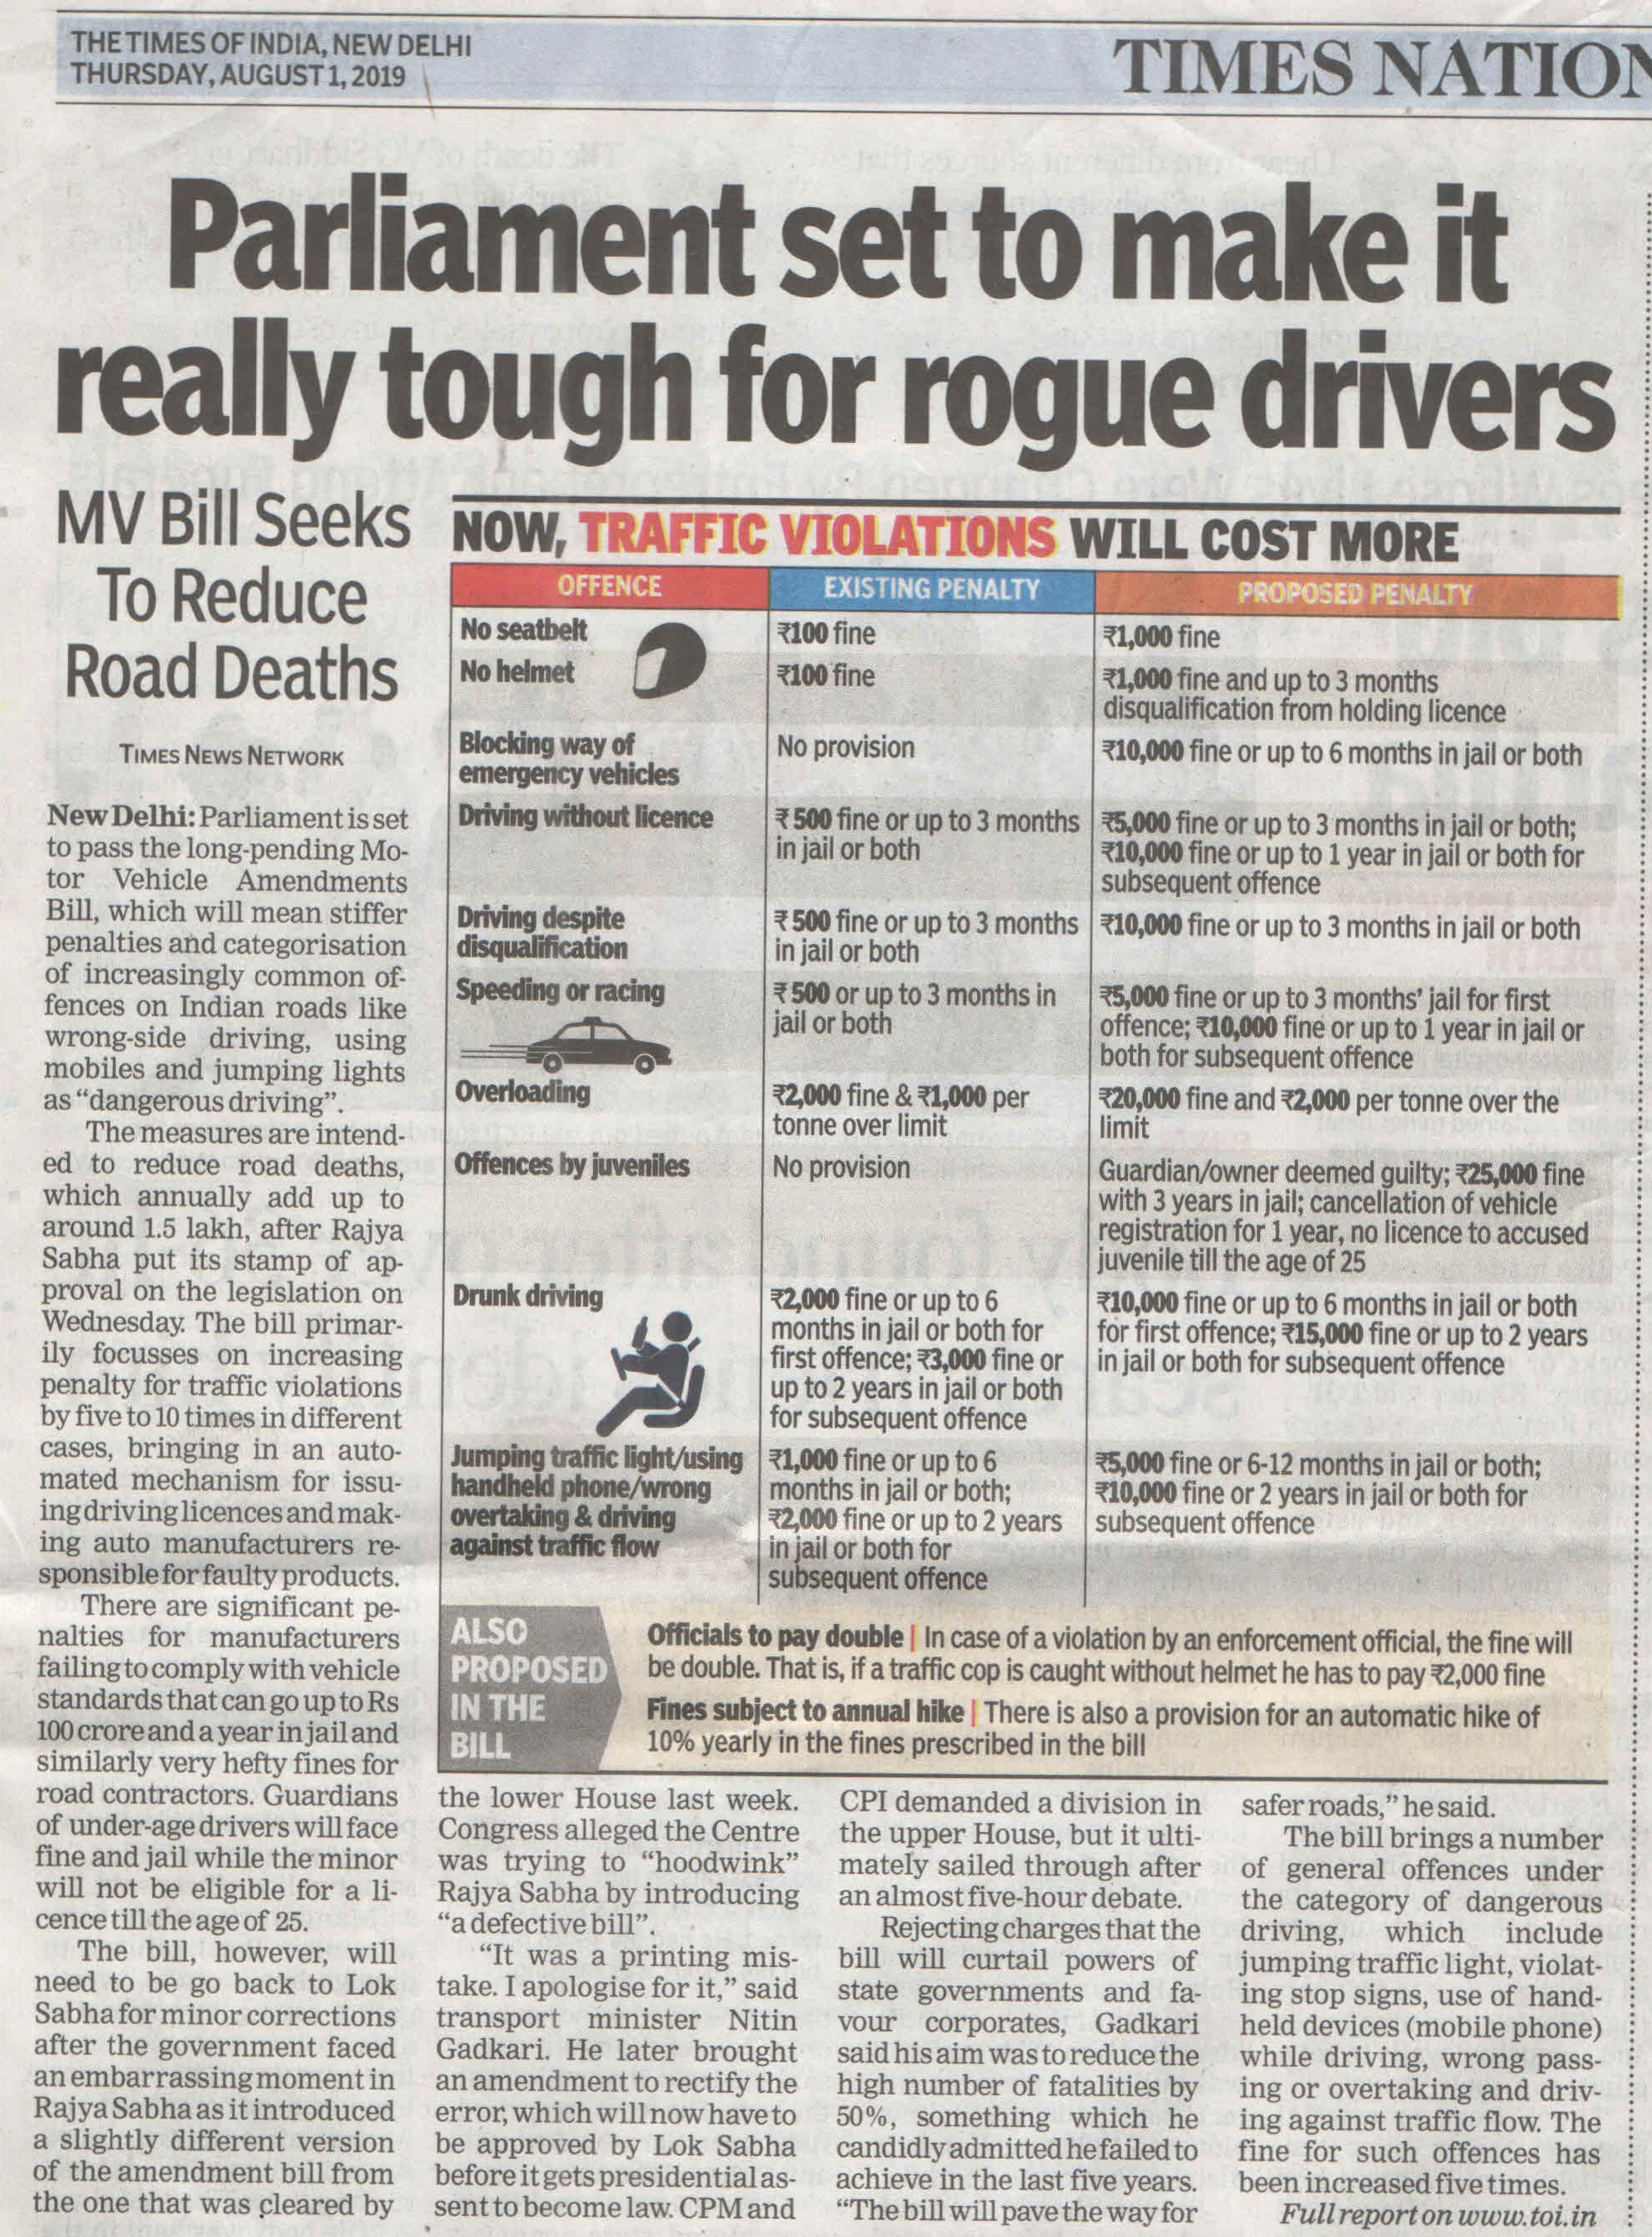 Tough time for Rouge Drivers